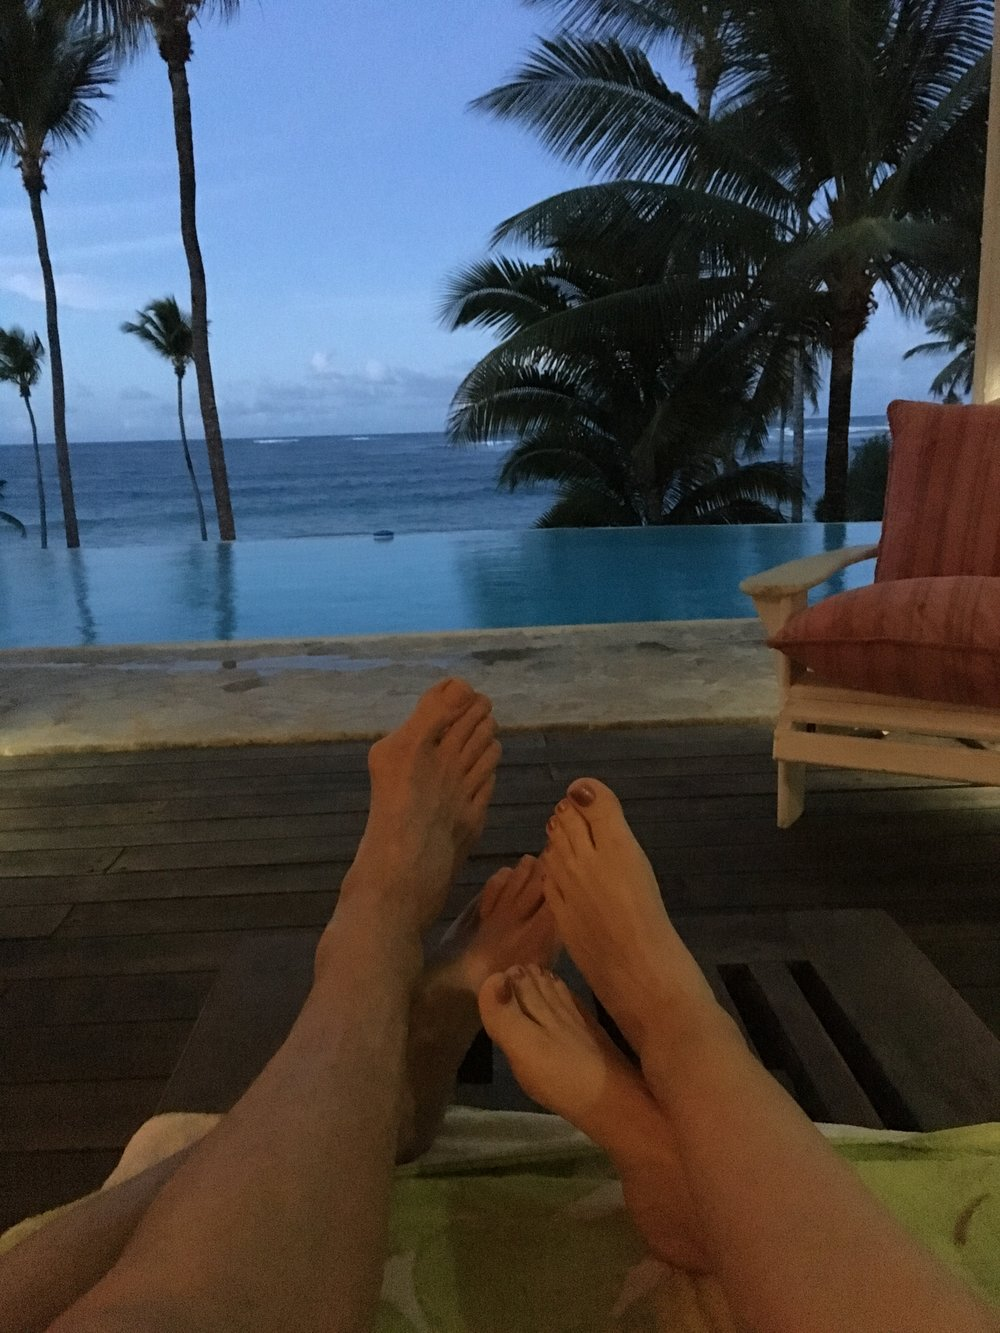 The view past our toes! Infinity pool and ocean! We could get spoiled! We did!